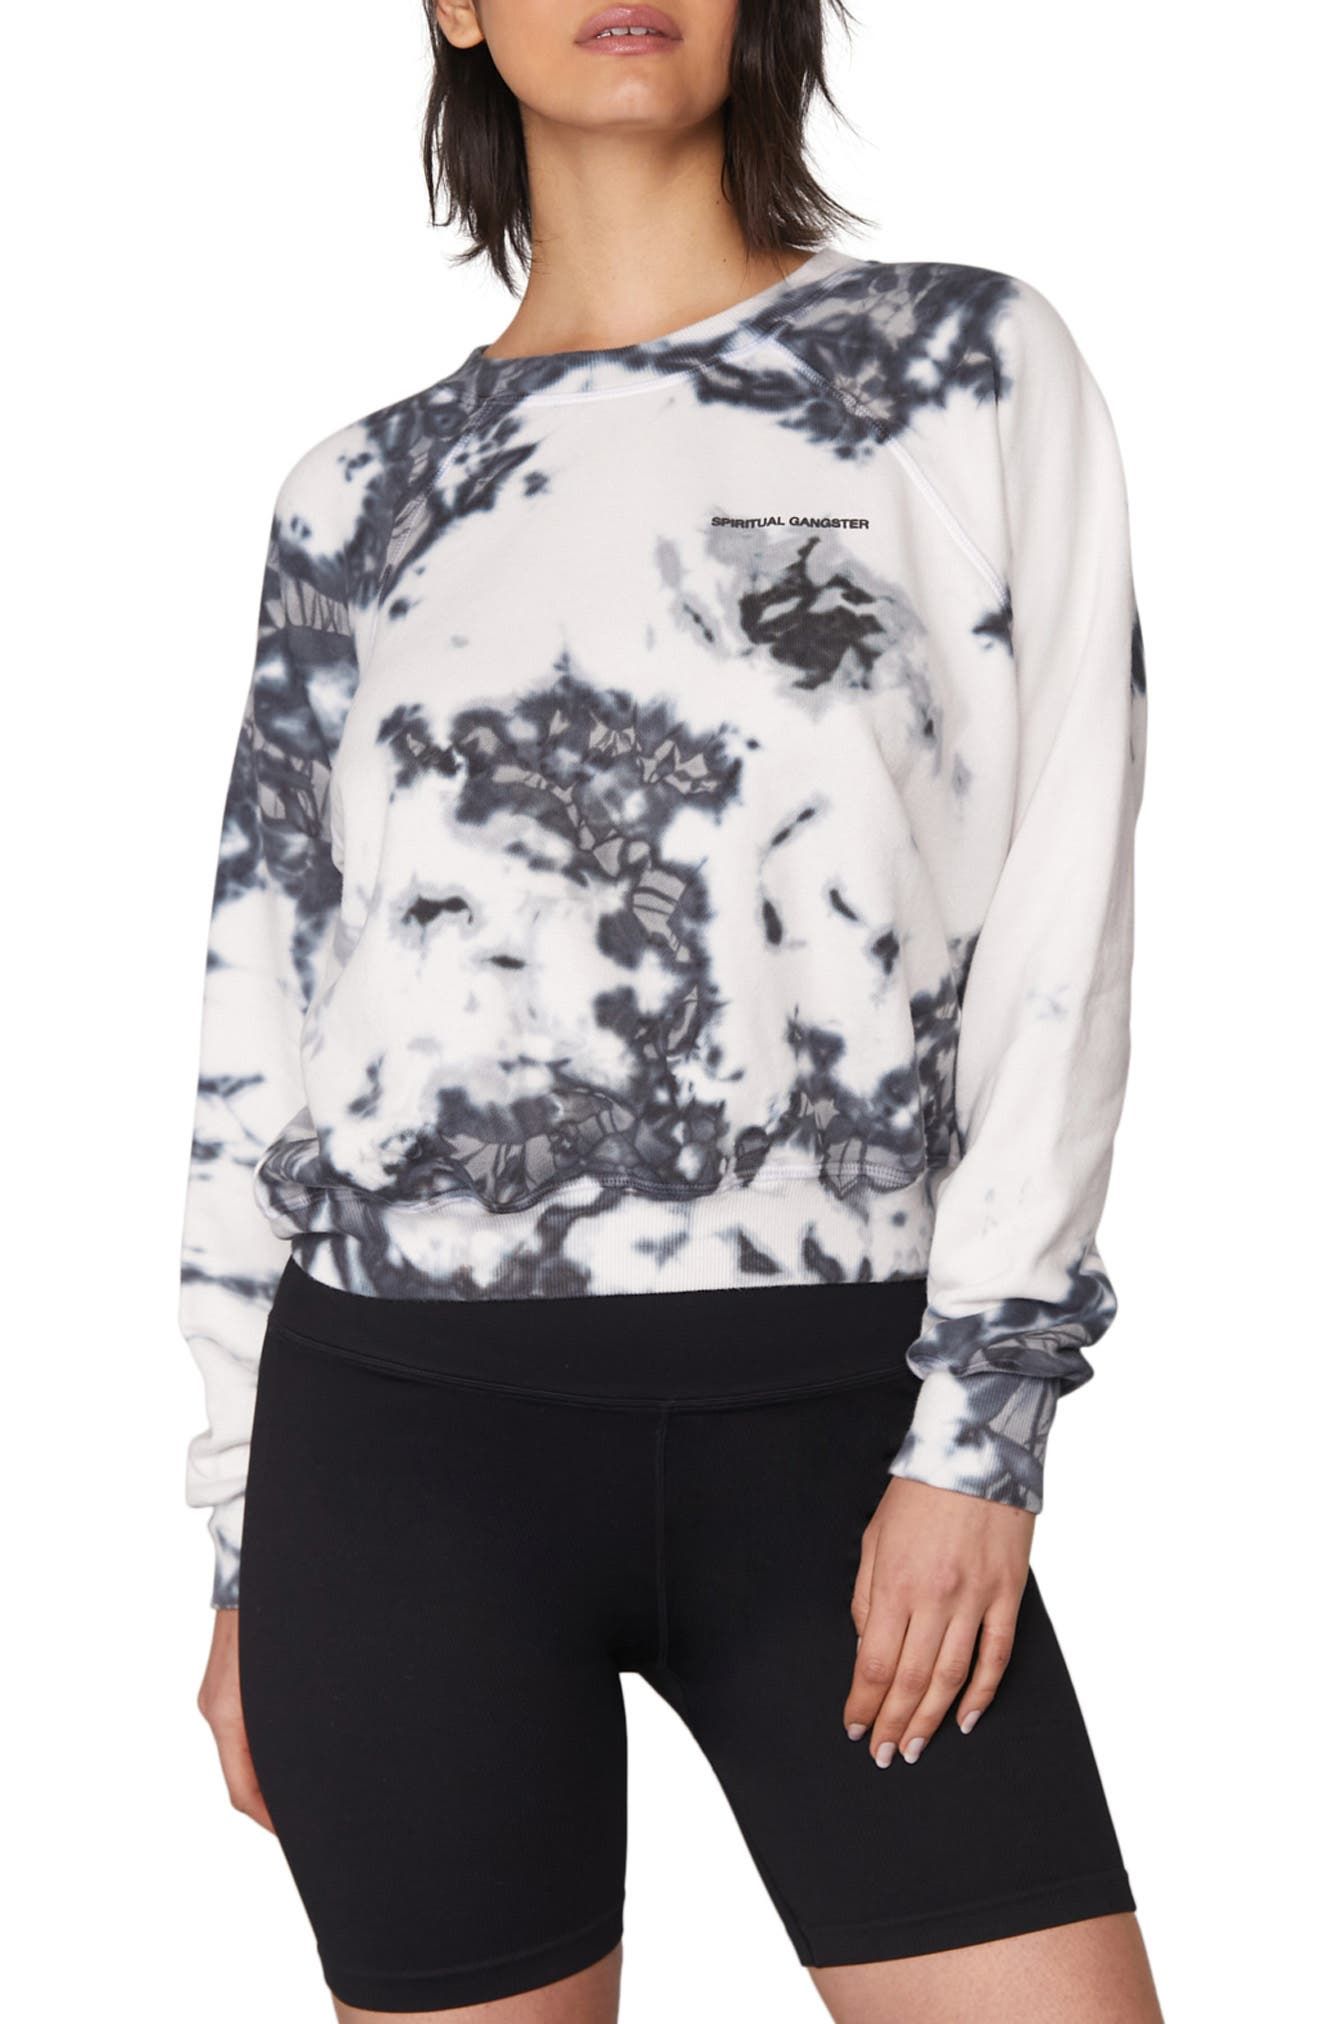 A raglan-sleeve pullover in comfy cotton is splashed in a fun tie-dye pattern to energize your day, even if you only spend it on the couch. Style Name: Spiritual Gangster Bridget Tie Dye Sweatshirt. Style Number: 6102823. Available in stores.